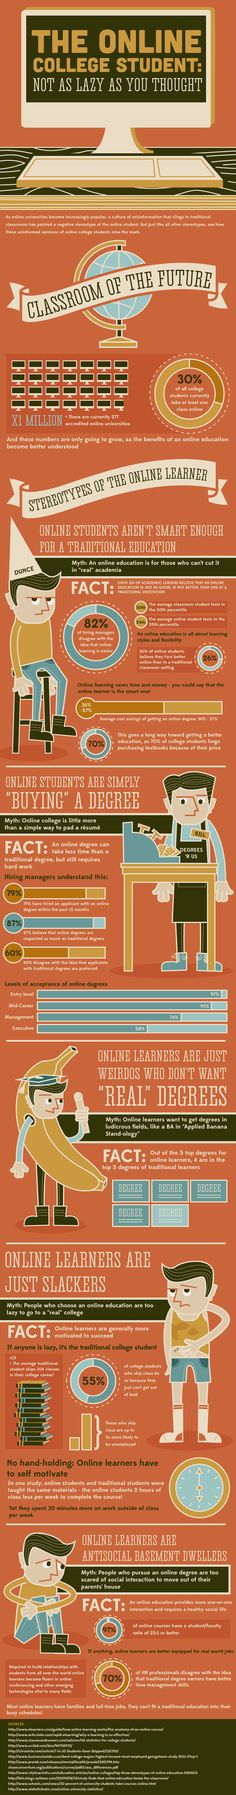 Stereotypes of the online learner #infographic #edtech